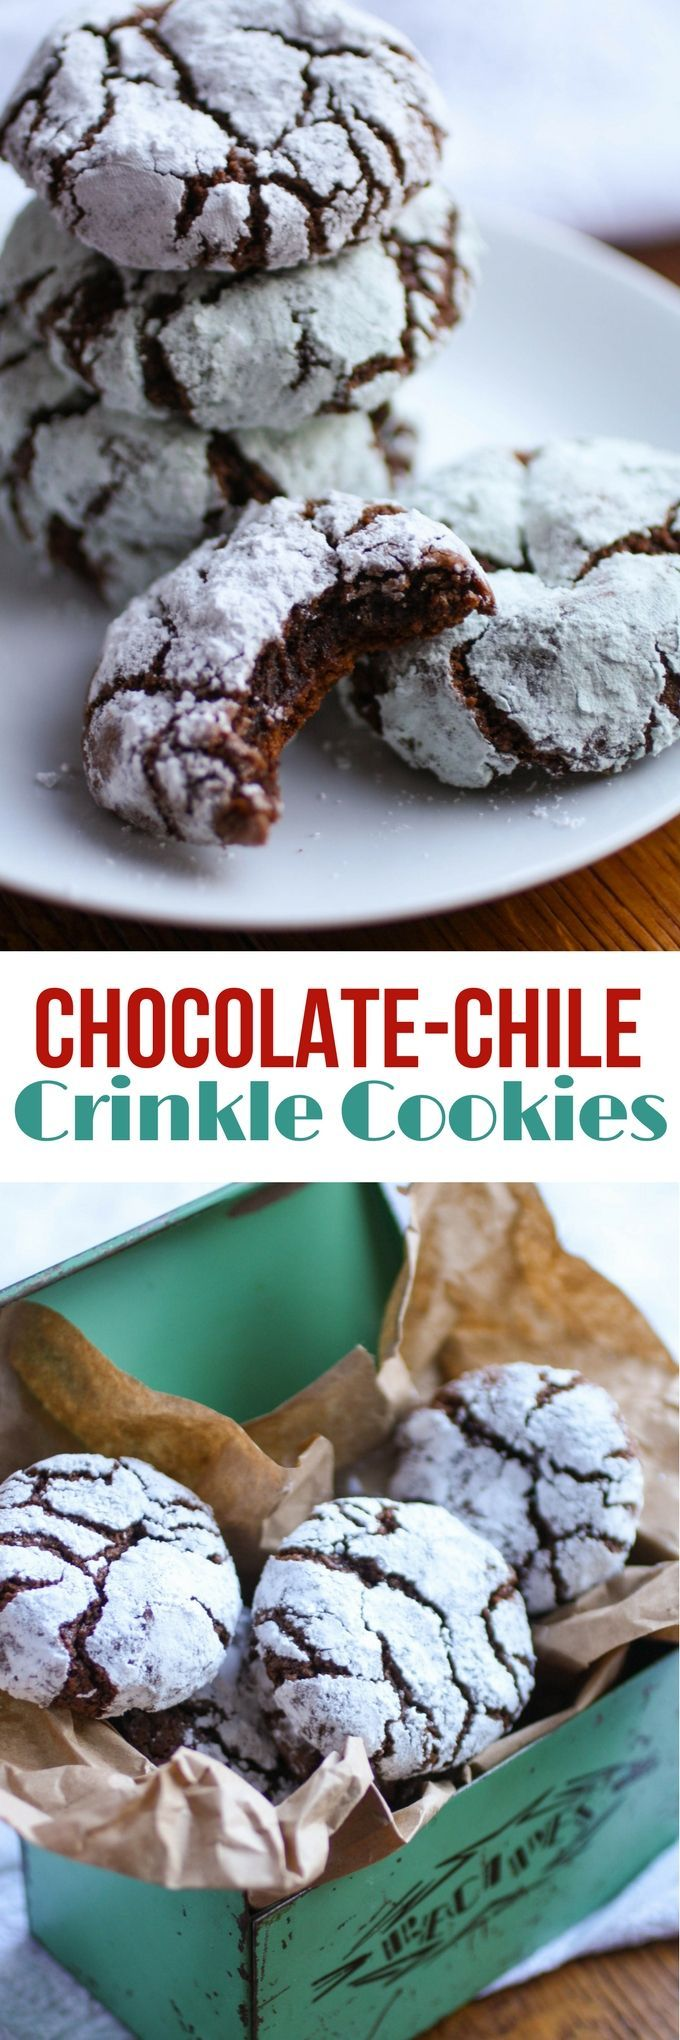 Chocolate-Chili Crinkle Cookies are delightful cookies to serve anytime! You'll love how rich and chocolaty these cookies are!